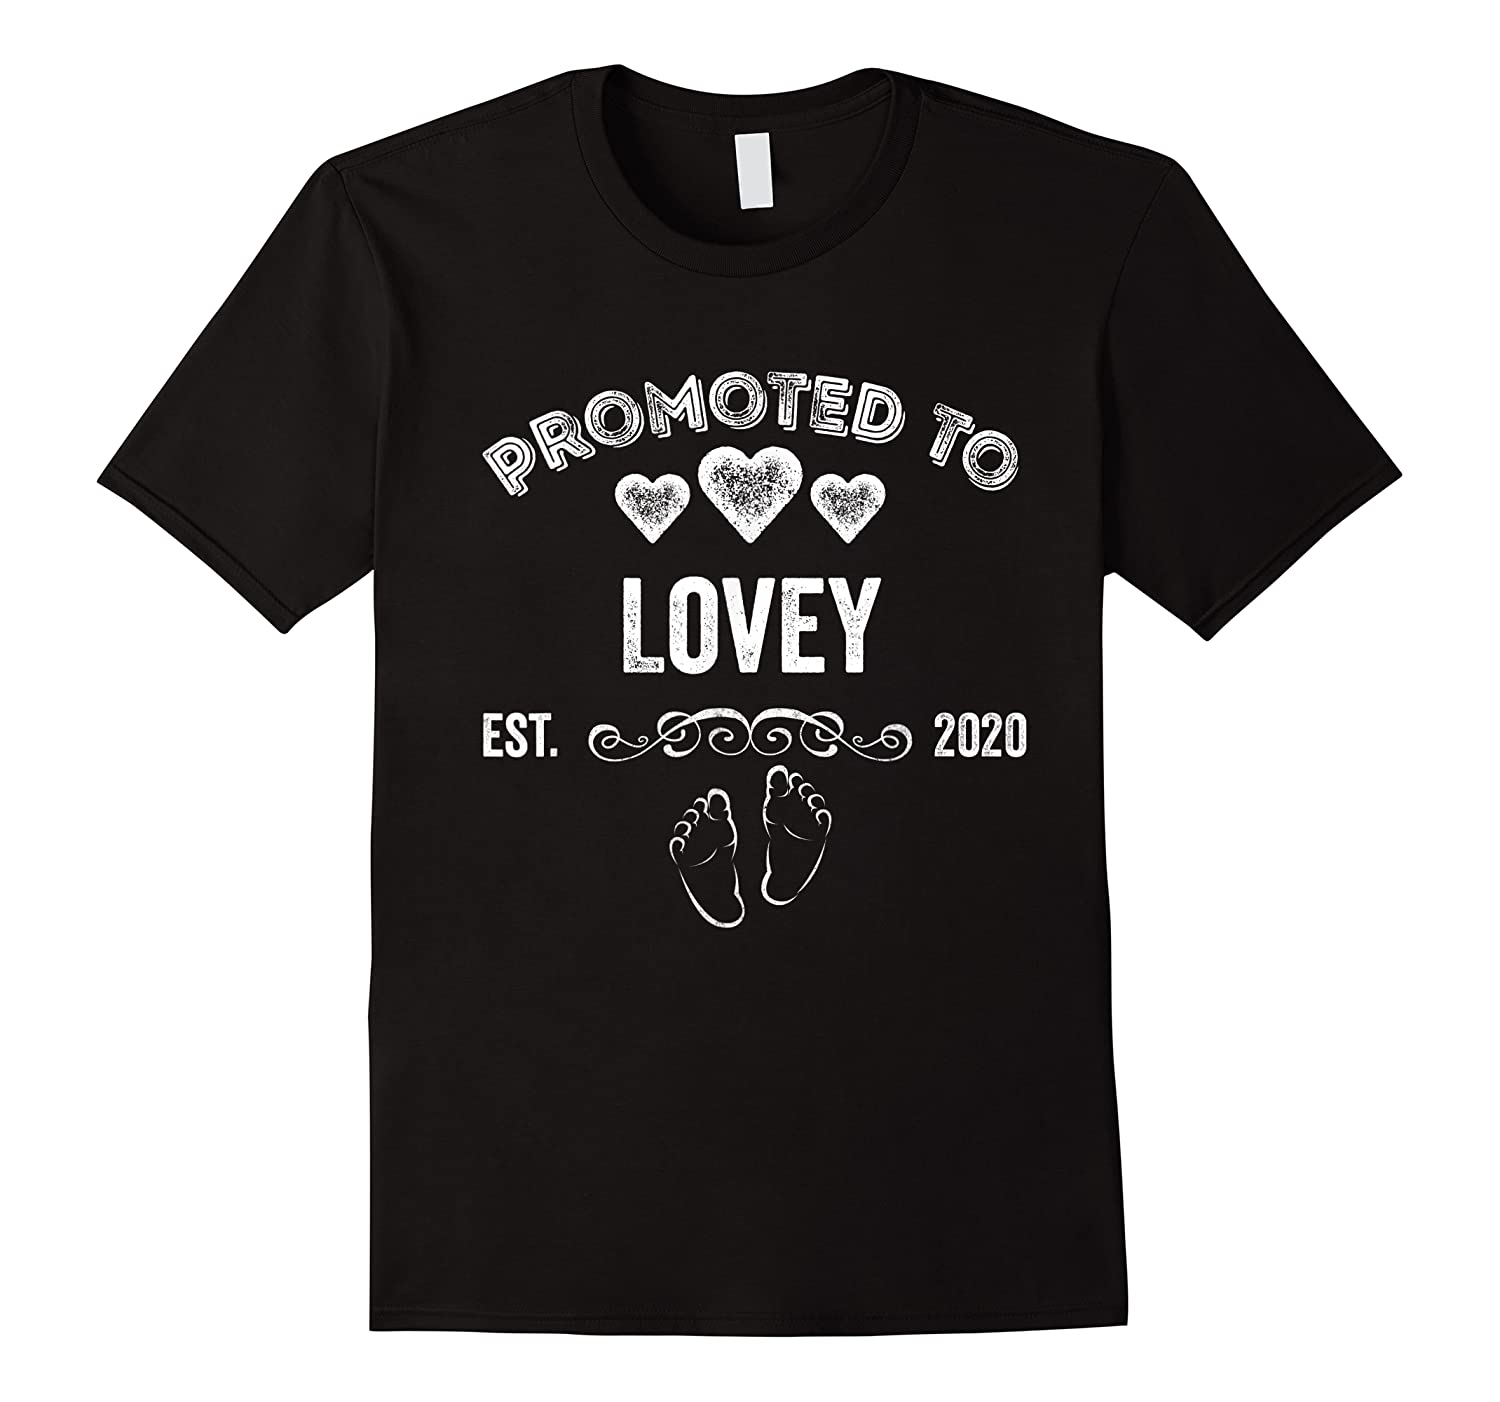 Promoted To Lovey Est 2020 Shirt Gift For Mom T-shirt